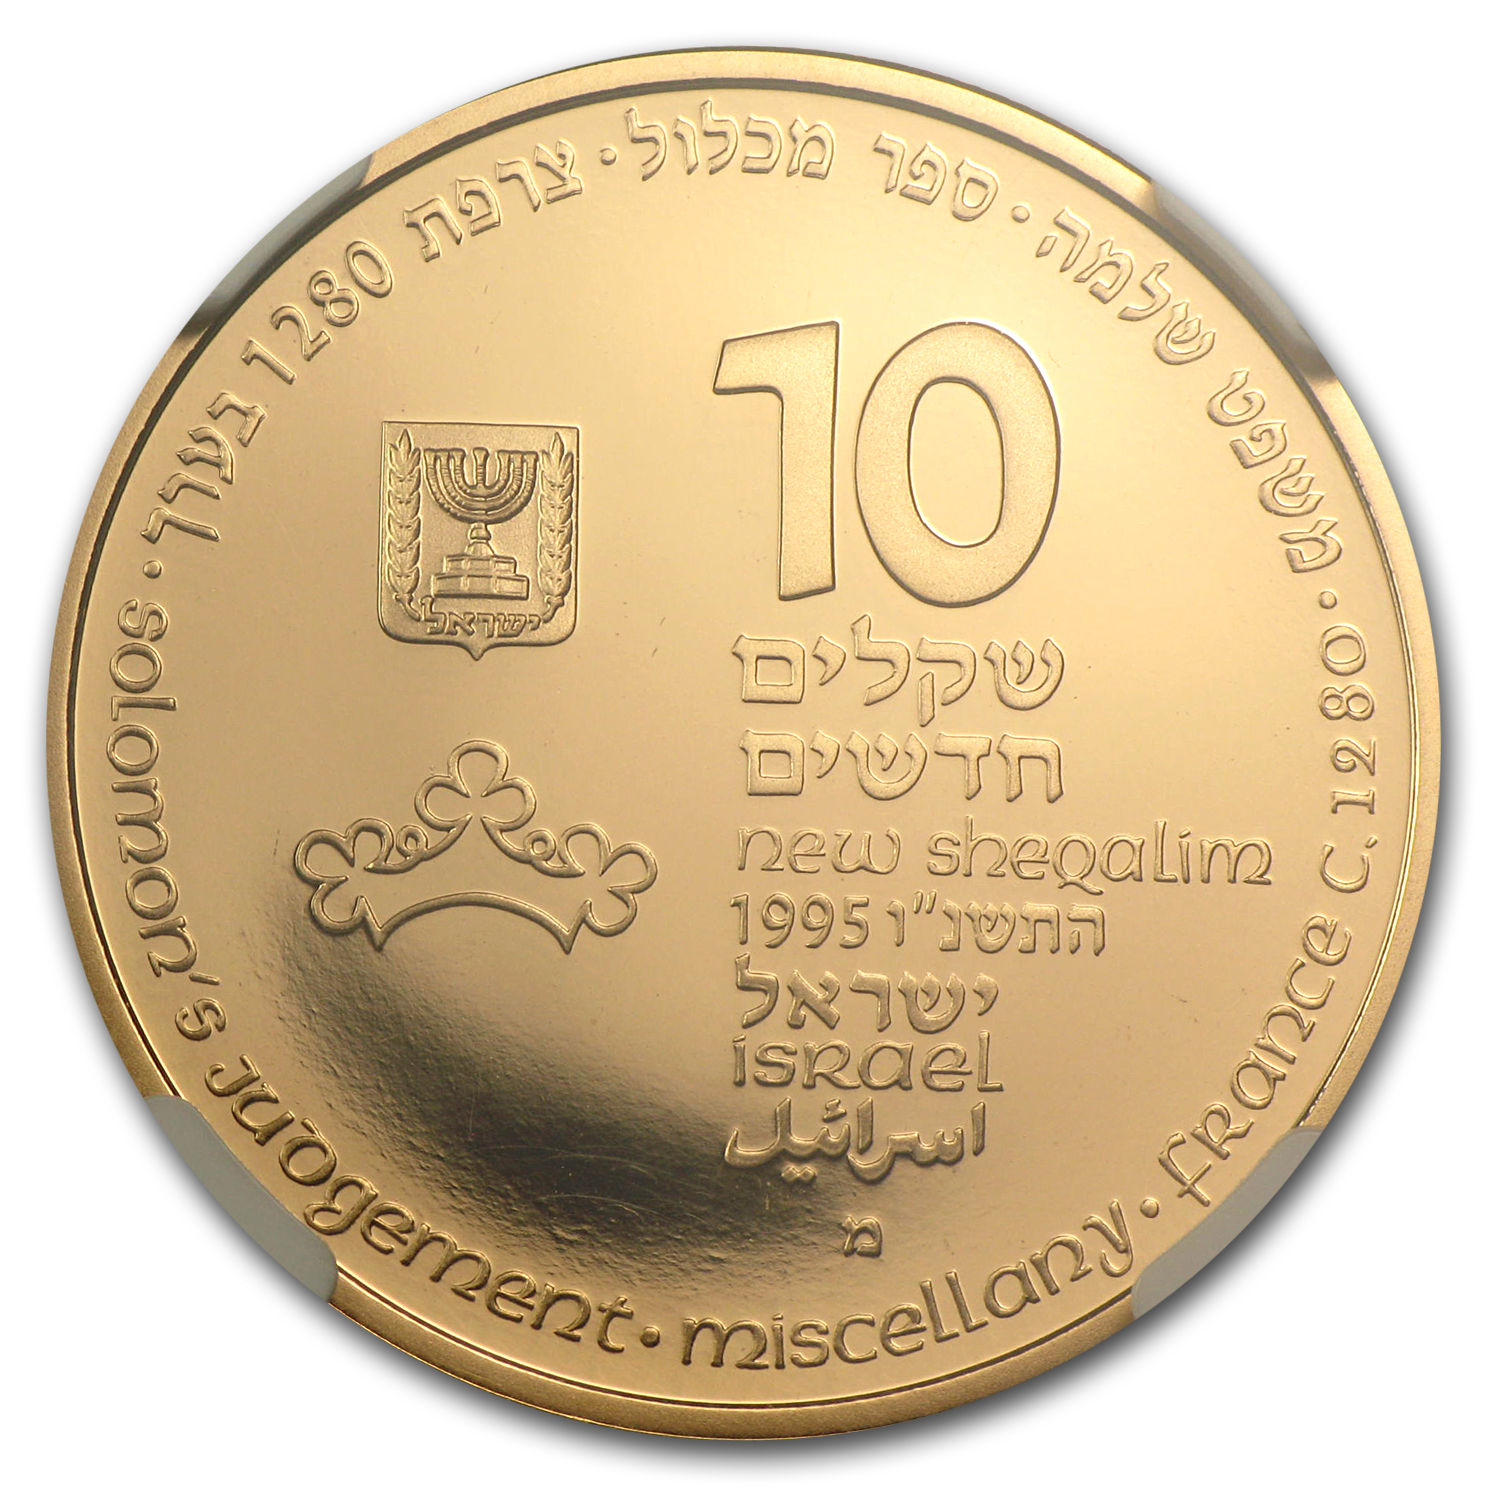 1995 Israel 1/2 oz Proof Gold Solomon's Judgment PF-70 NGC